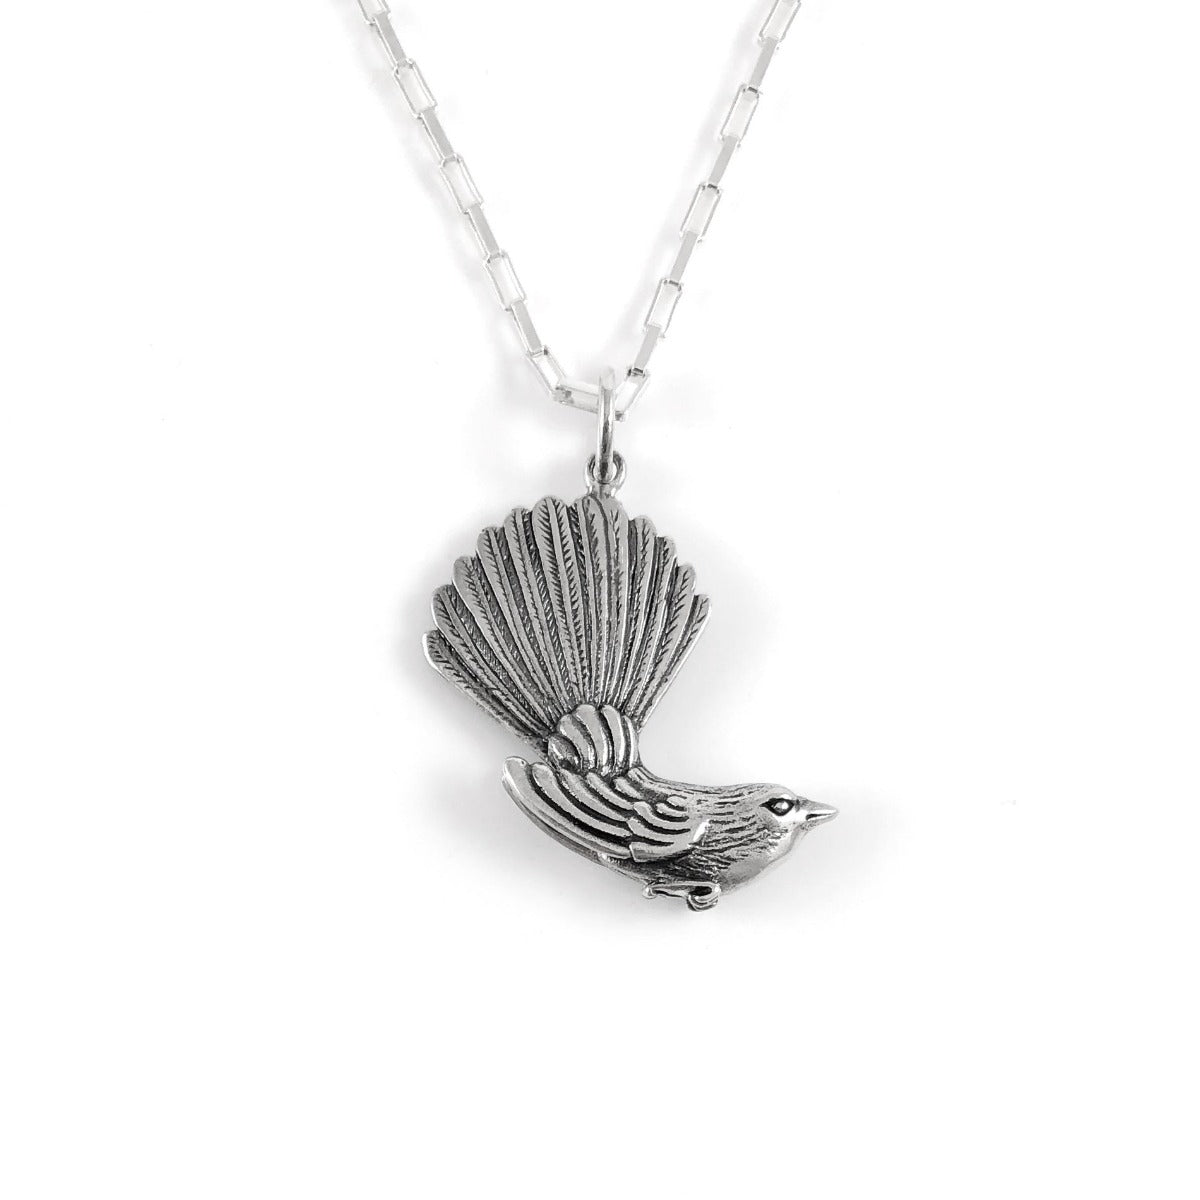 jade kiwi kaikoura sterling silver fantail necklace